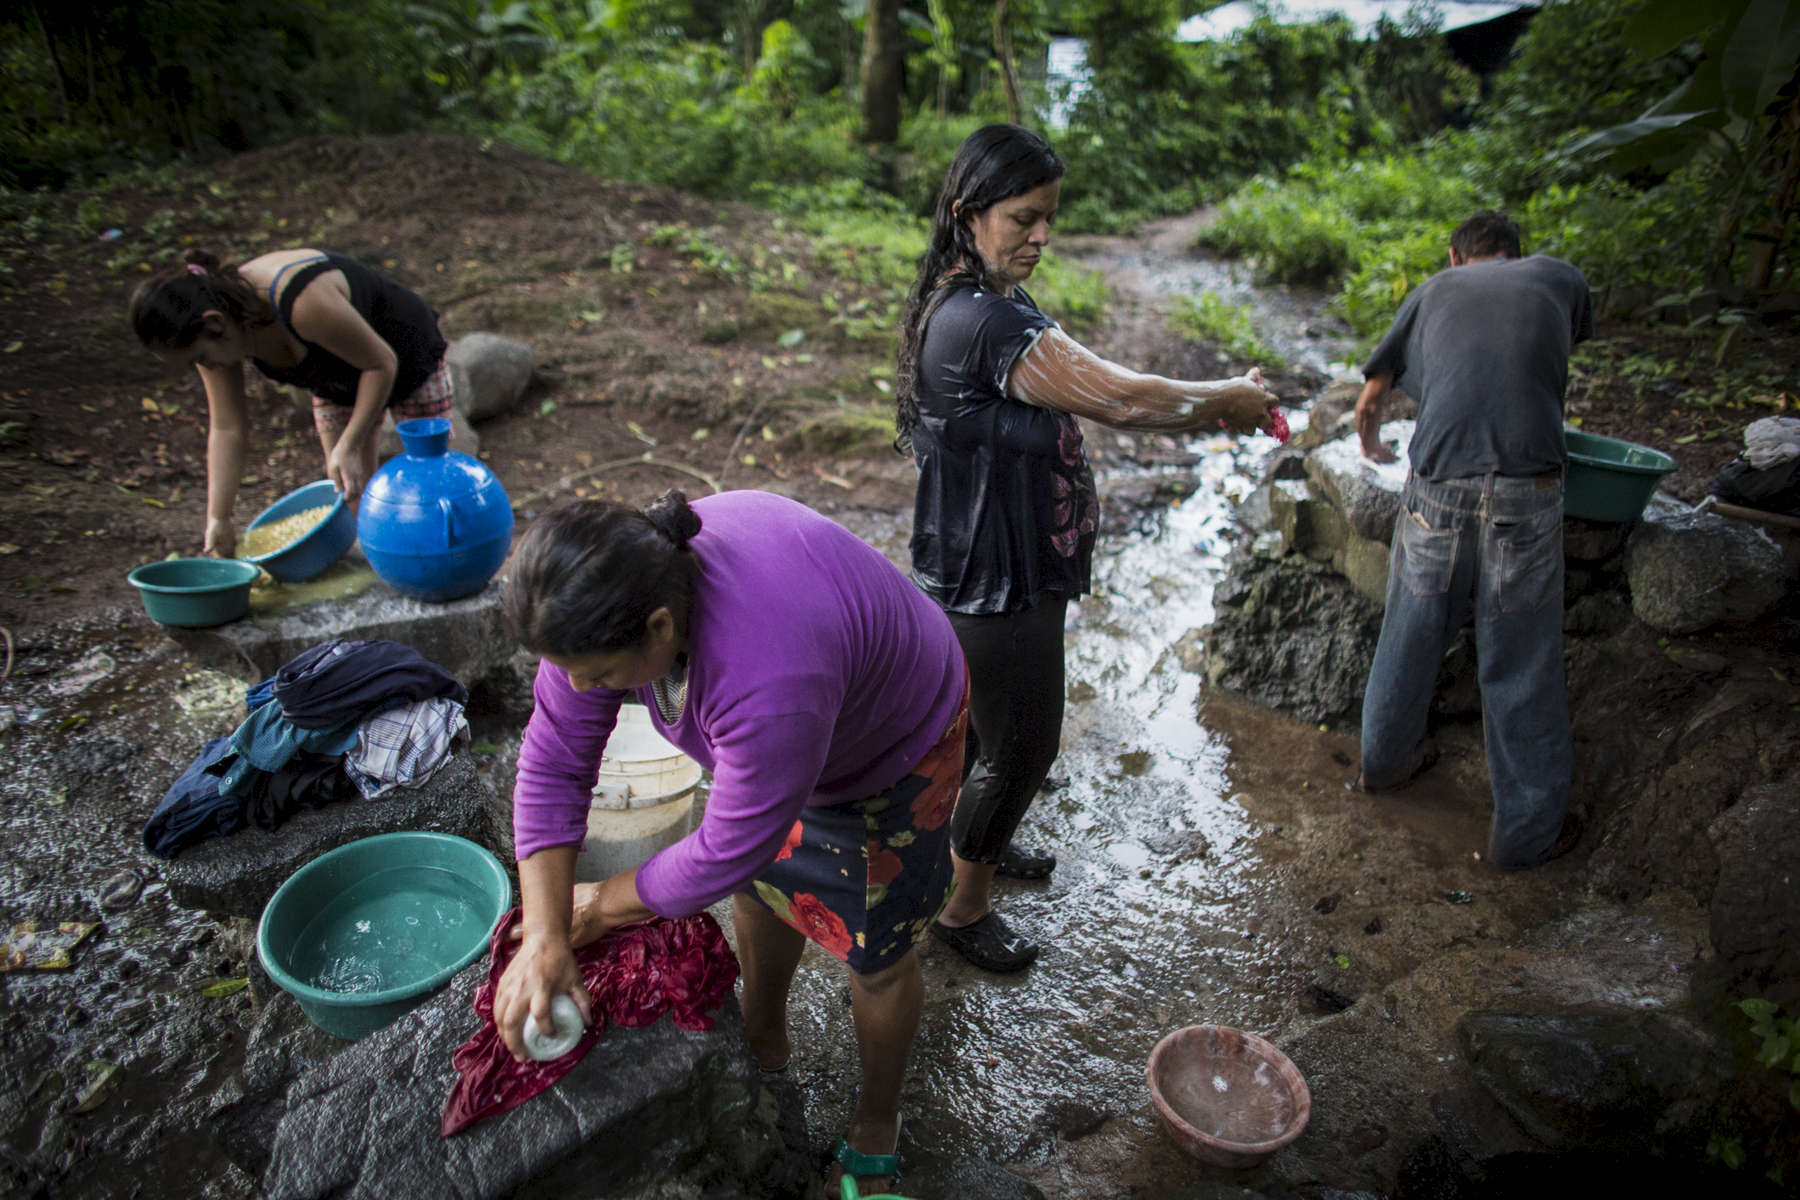 Cabañas, El Salvador- Maria Alejandrino, 34, (c) Teresa Serrano, 42, (l) a small community in Cabañas, El Salvador on Tuesday, June 26, 2018. Alejandrino and Serrano, like most people in their community of 112 families, has no access to running water and must come to the local well as early as 2am during the dry season for water. Even though politicians make promises during election season, the community has yet to see any change in their situation. Many have built make shift plumbing systems between homes to distribute water but most use rain water and community wells.(Jane Hahn)